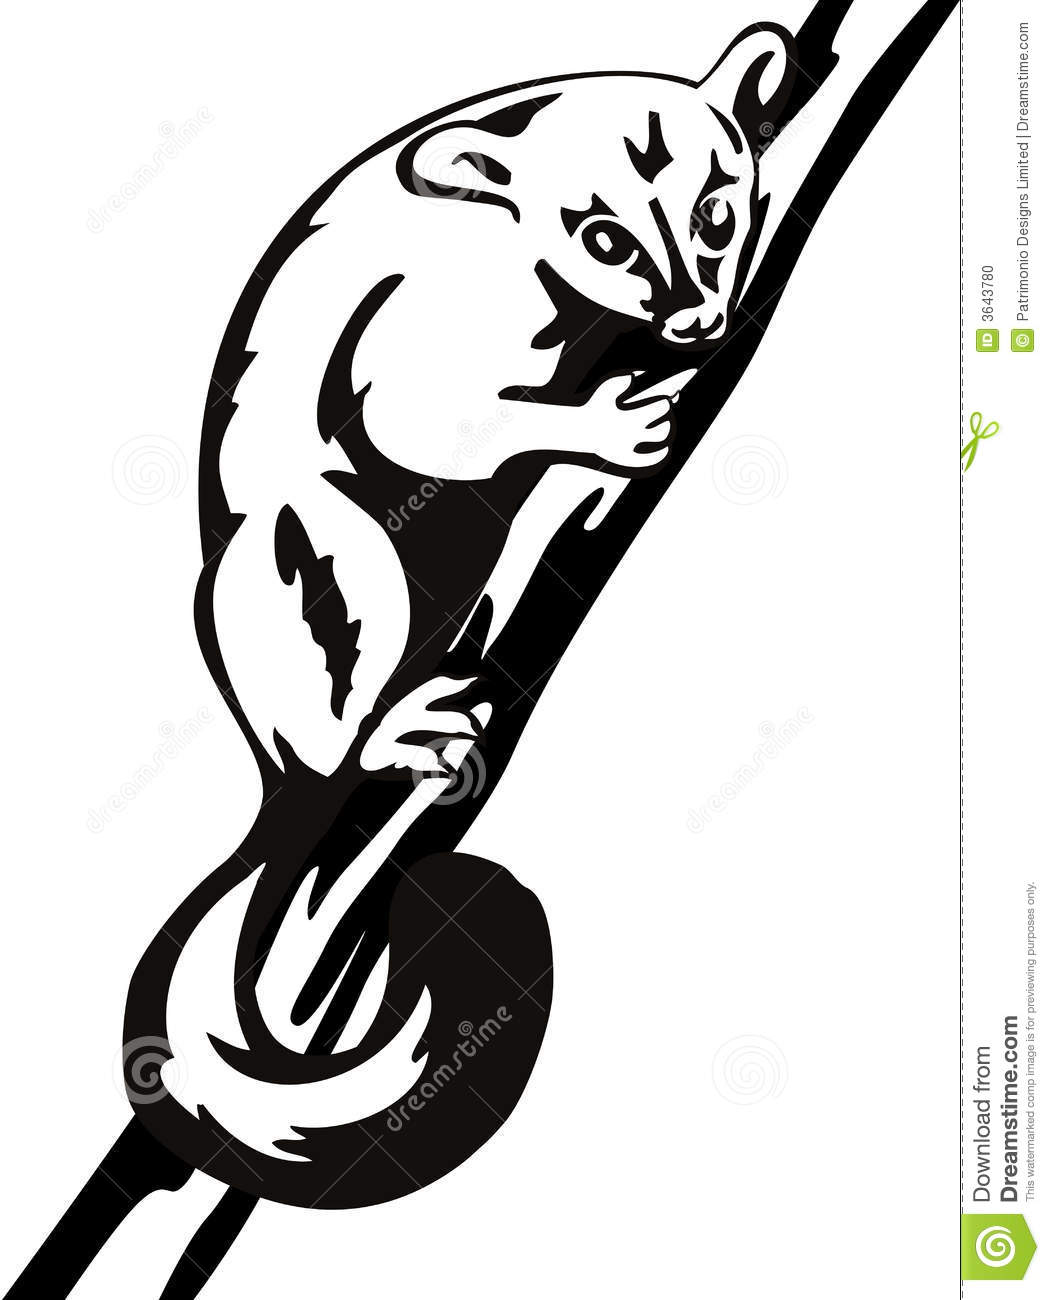 Possum clip art black and white clipart download 2 - WikiClipArt